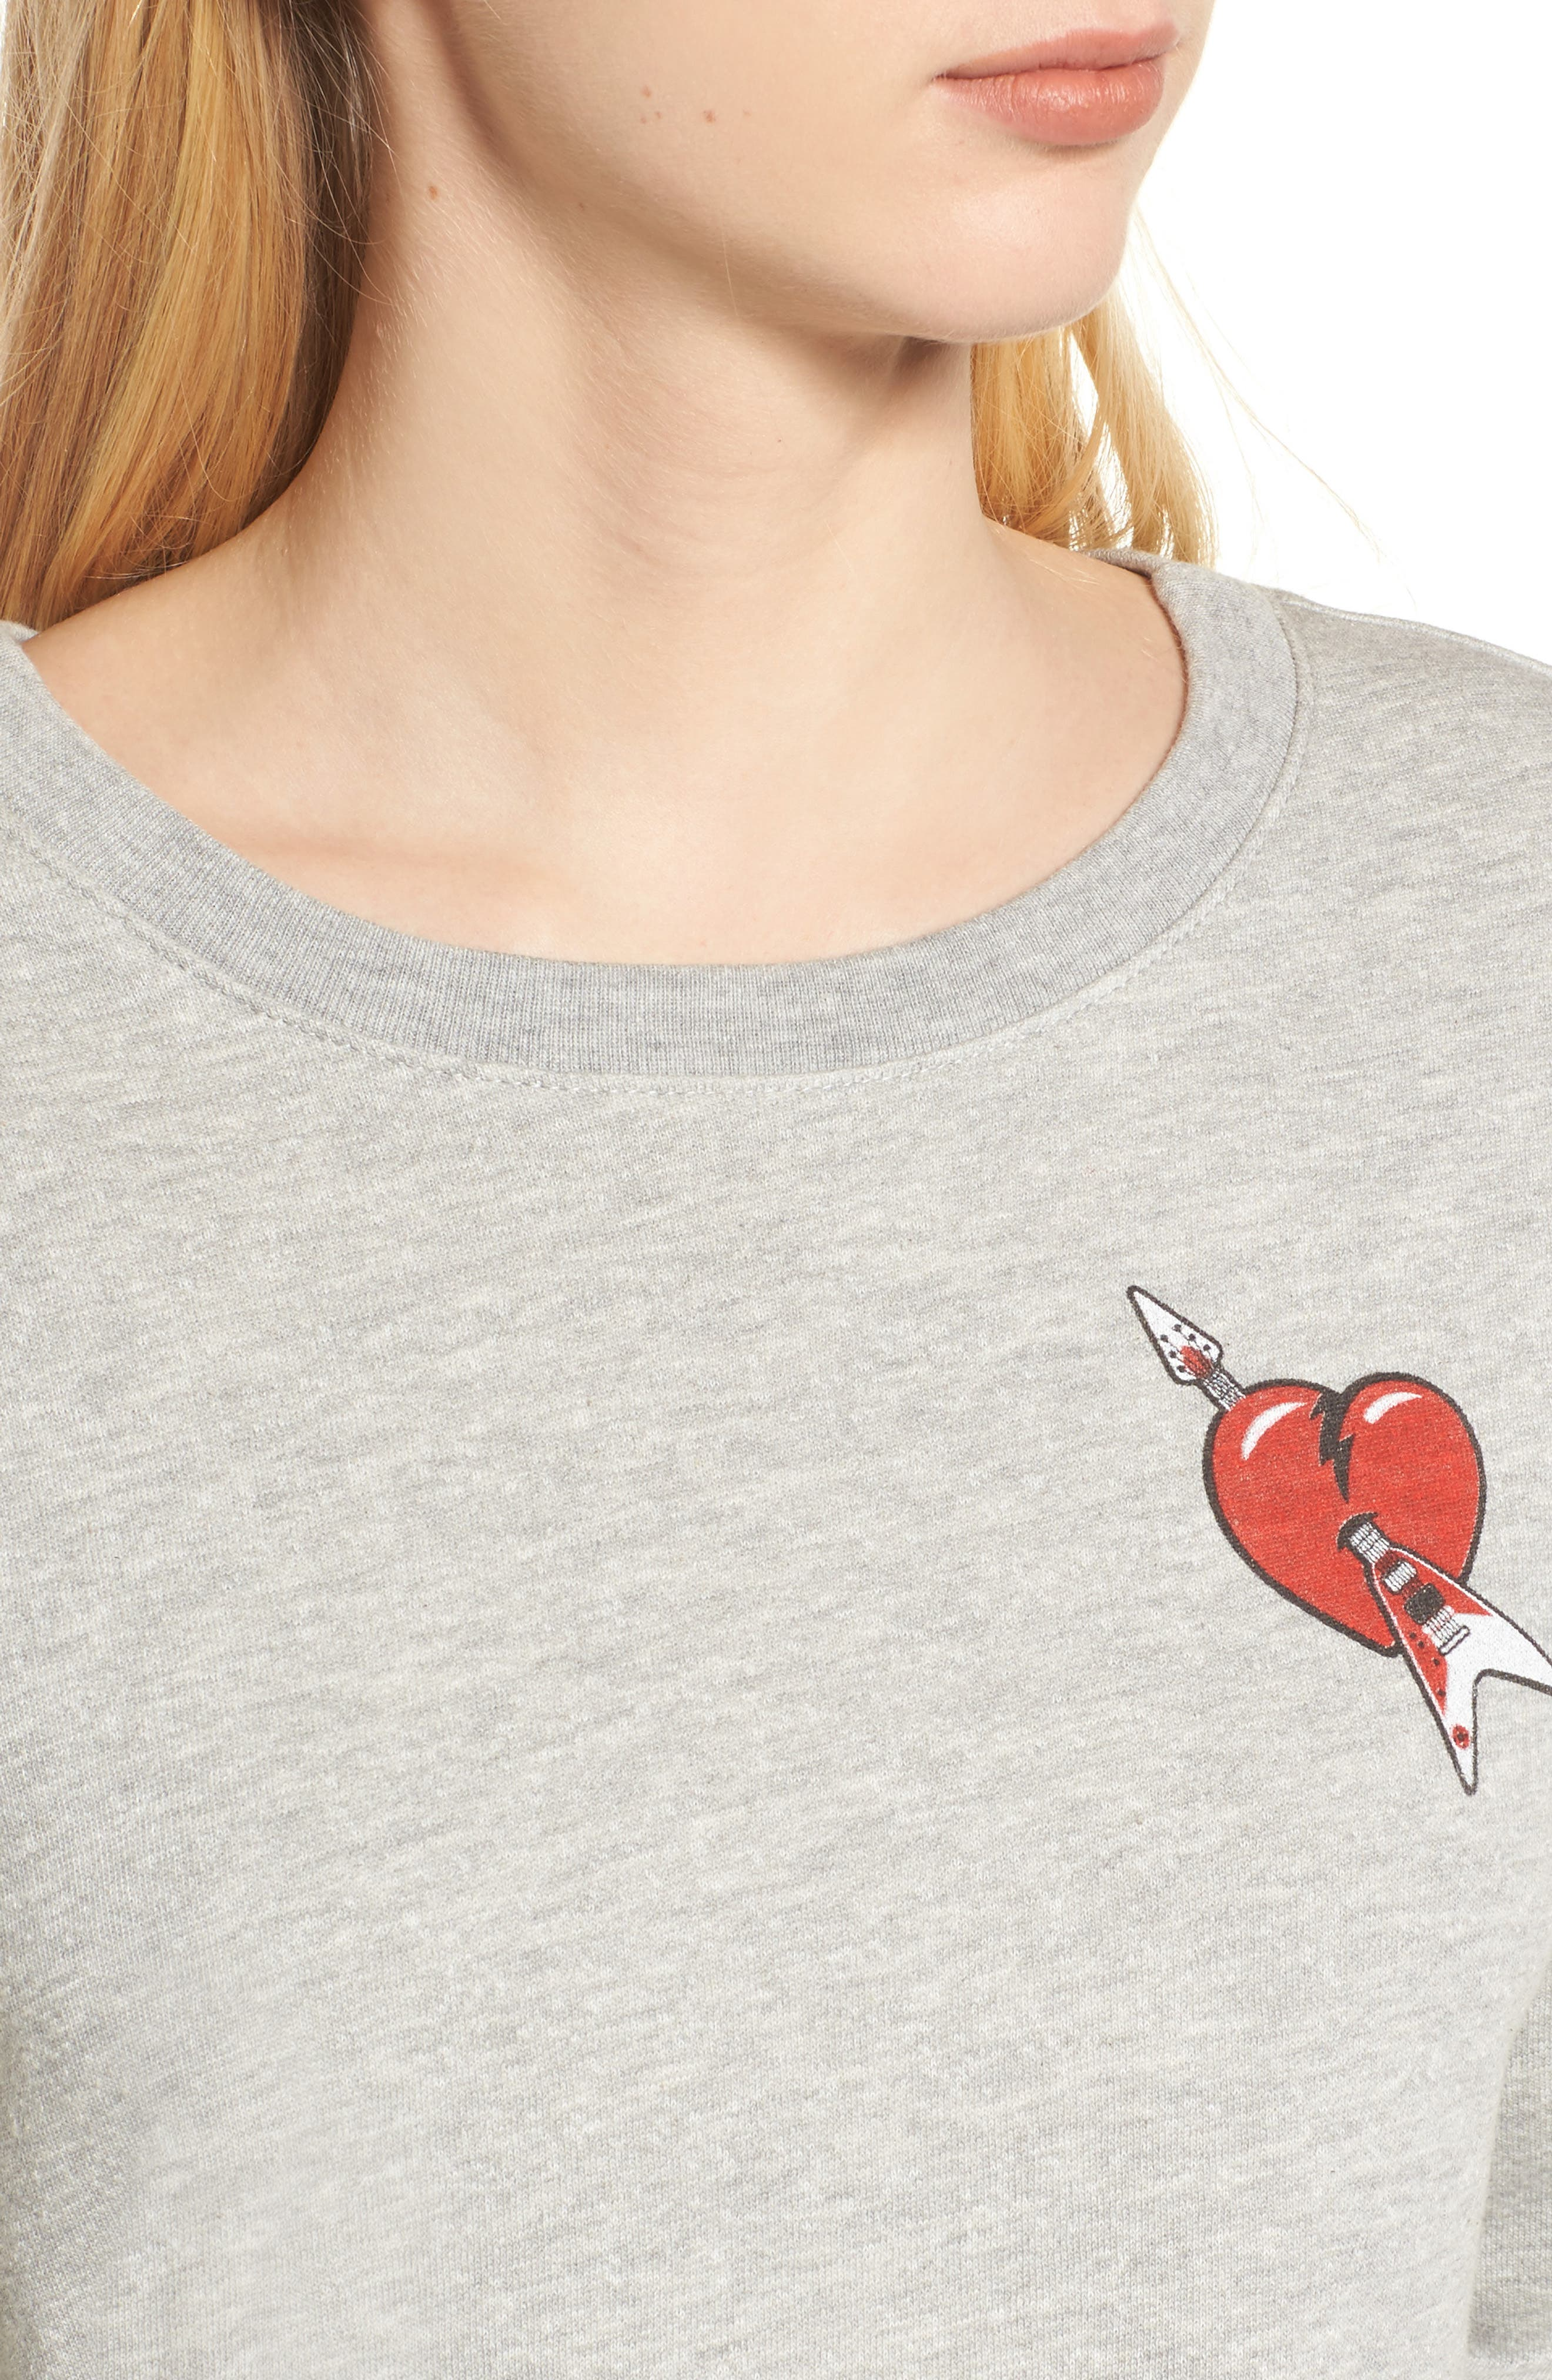 Tom Petty and the Heartbreakers Sweatshirt,                             Alternate thumbnail 4, color,                             020